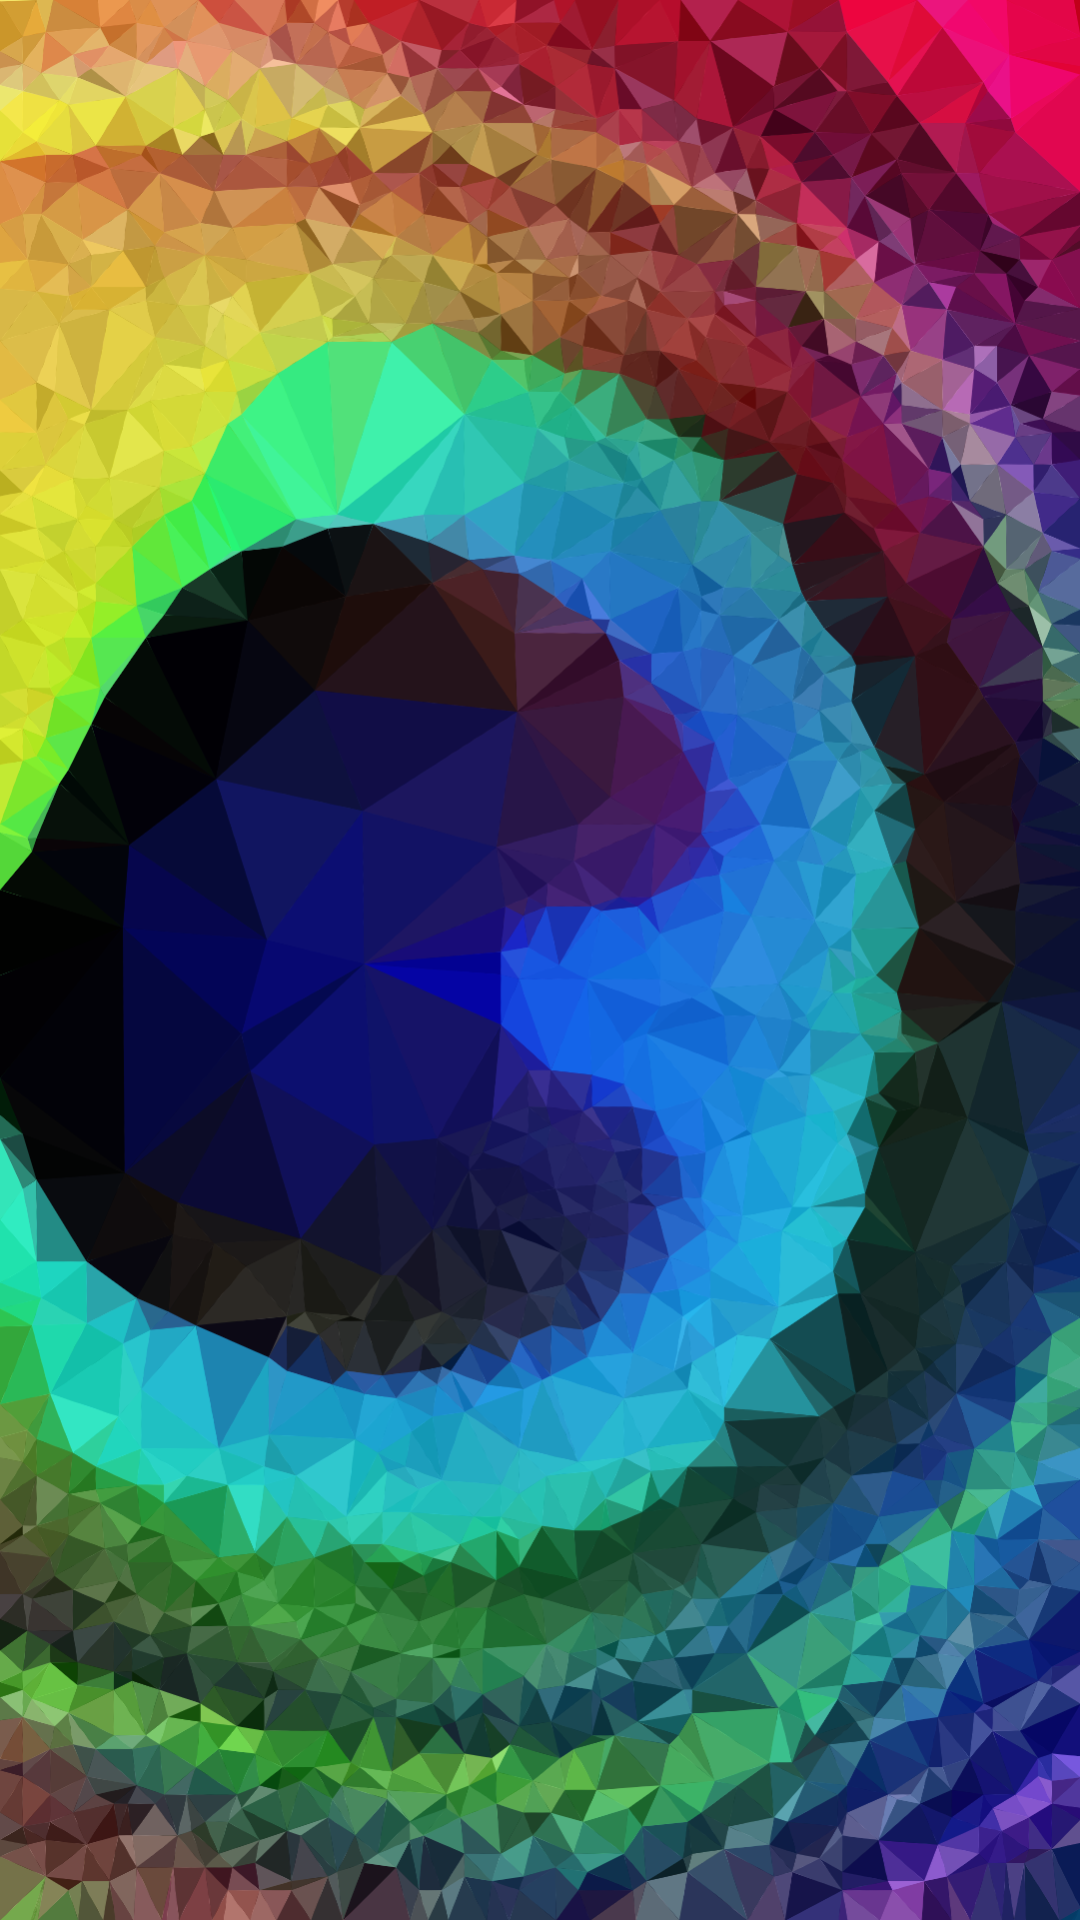 Polygon Art Rainbow Feather Wallpaper 3d poly art in 2019 1080x1920